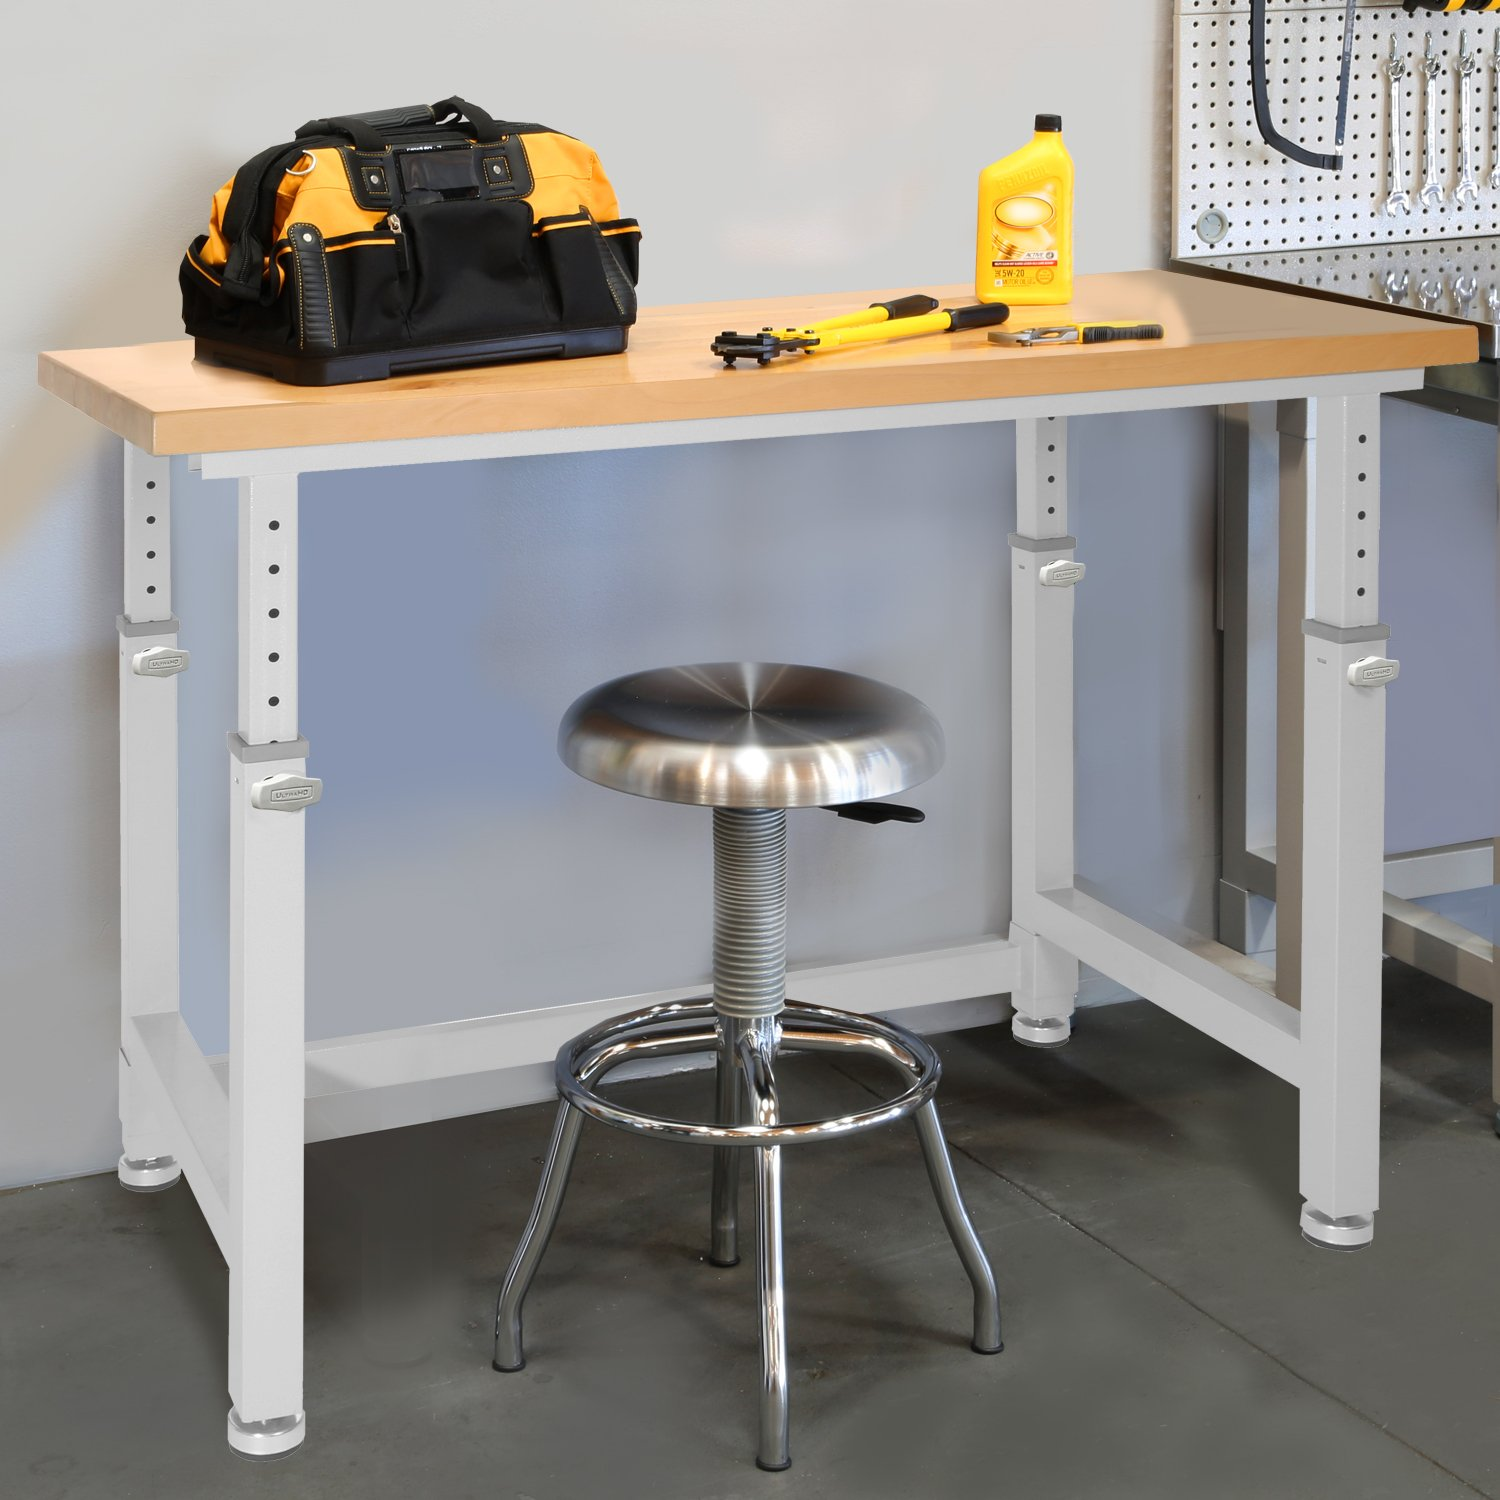 UltraHD Adjustable Height Heavy-Duty Wood Top Workbench, 48'' x 24'' by Seville Classics (Image #2)